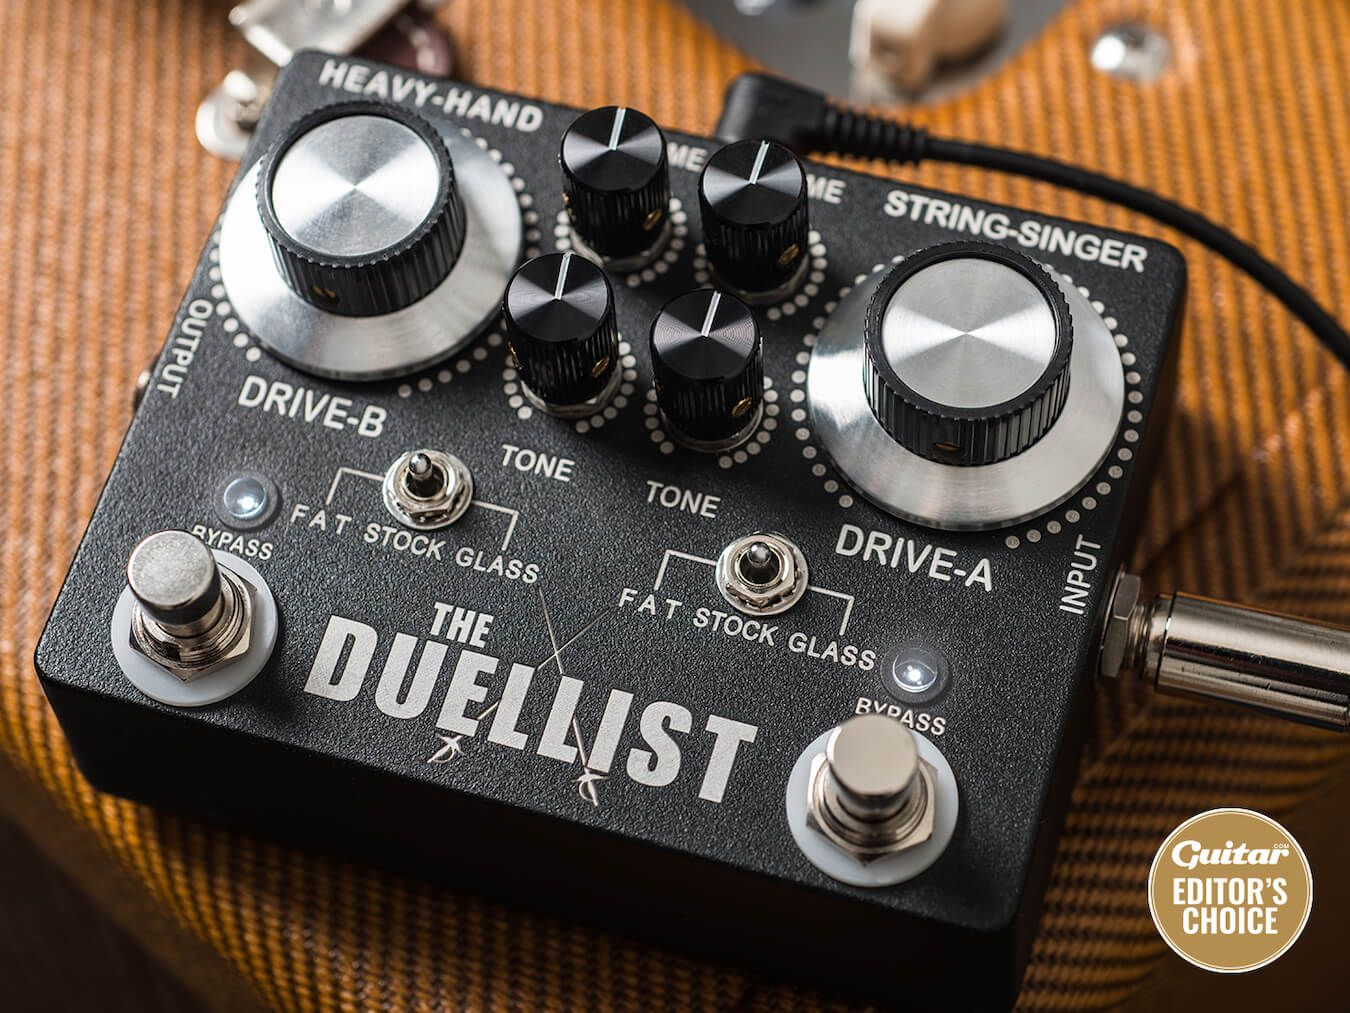 Review: King Tone The Duellist guitar pedal. Promising a new take on two classic overdrive pedals in one unit, is it time to crown a new king of tone?